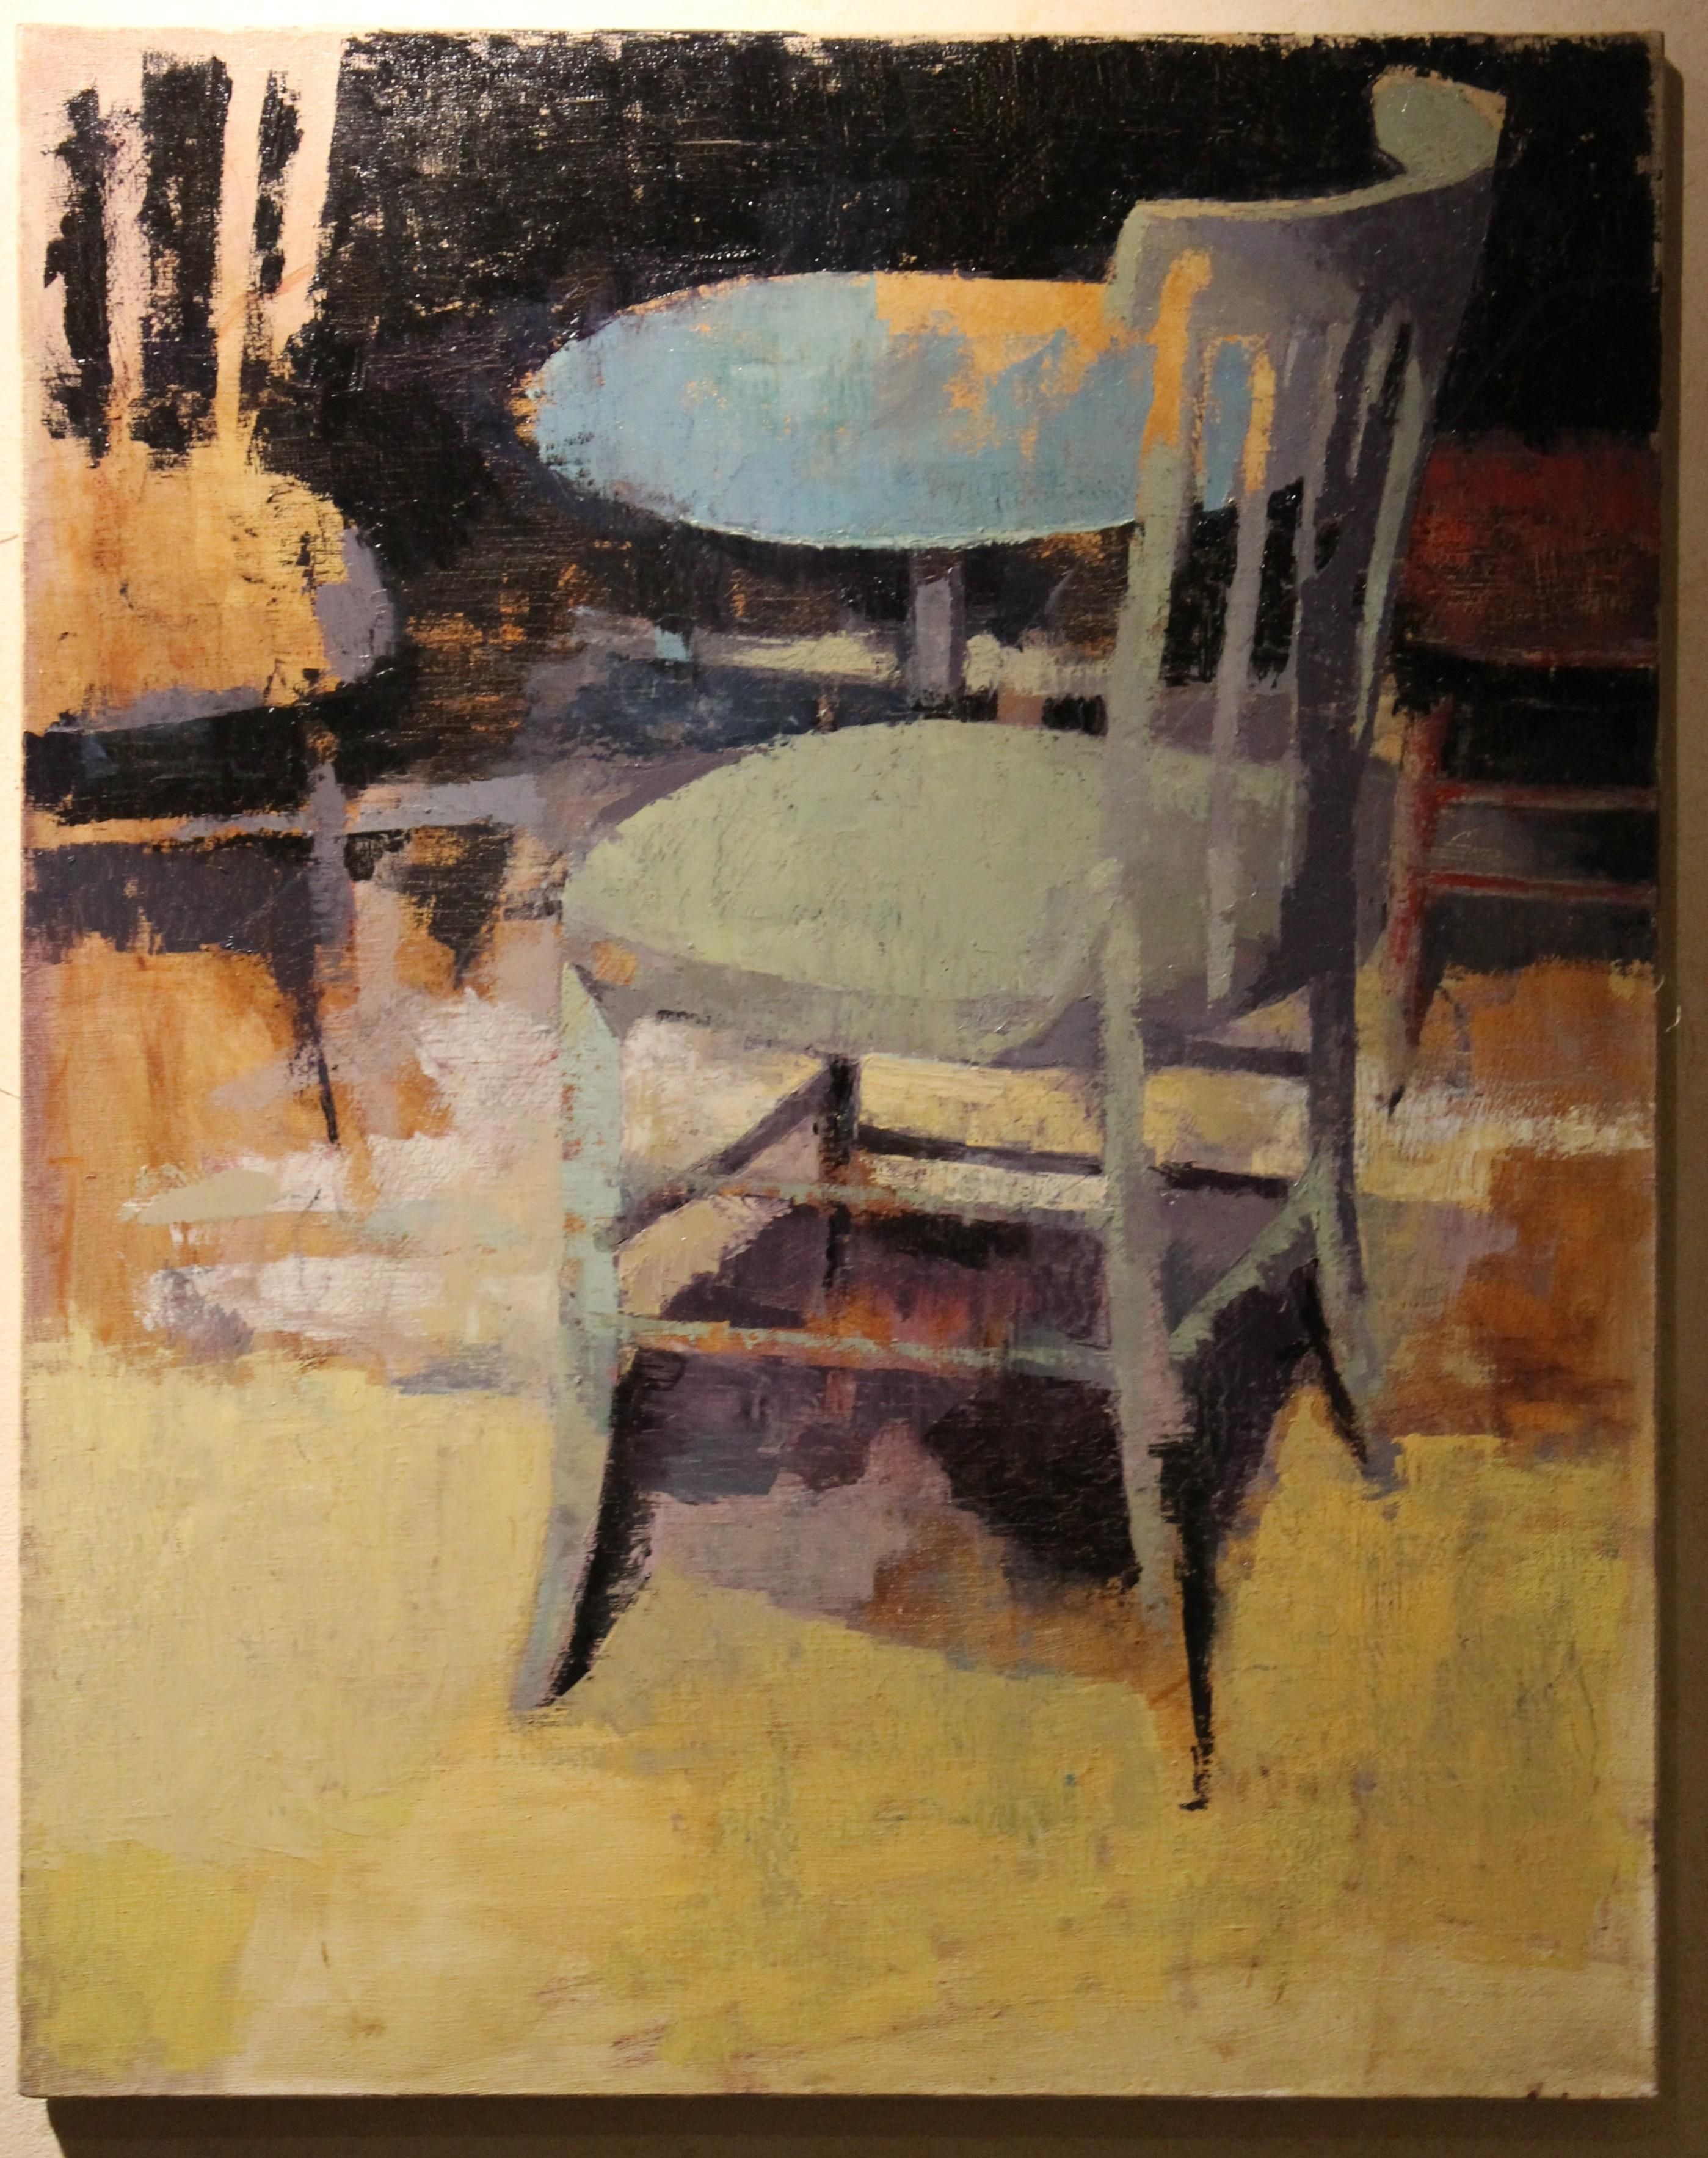 Contemporary Oil on Canvas Interior Scene with Round Table and Chairs Painting